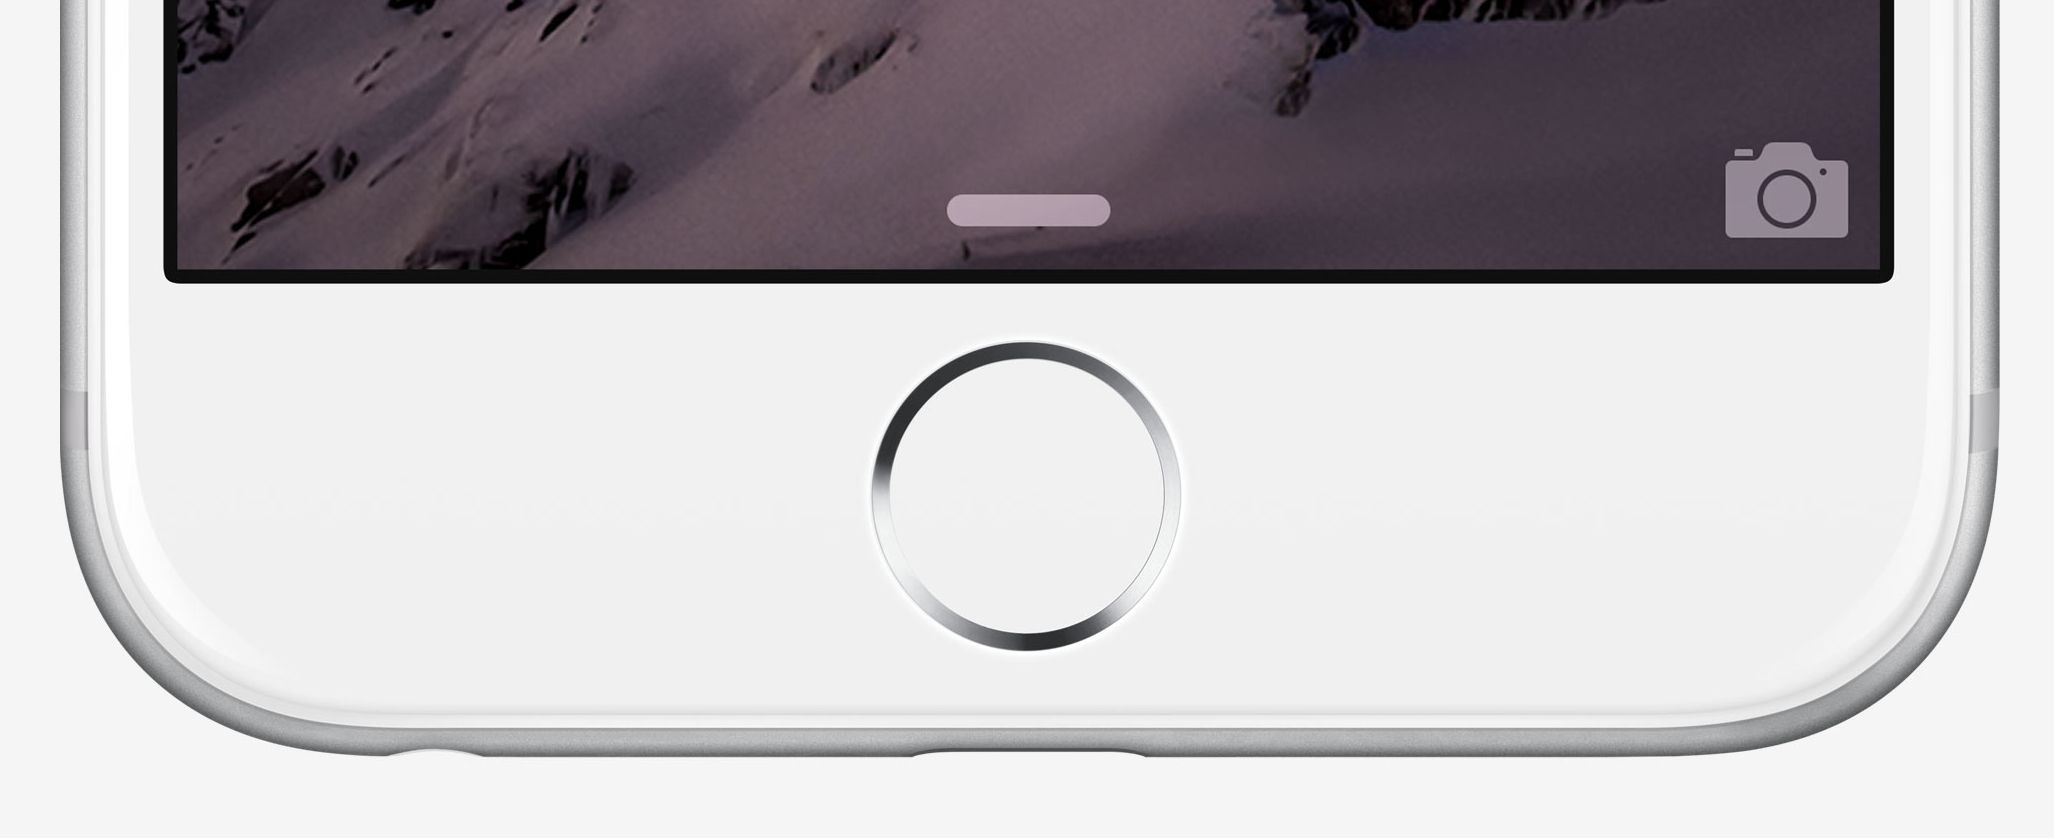 double tap home button iphone